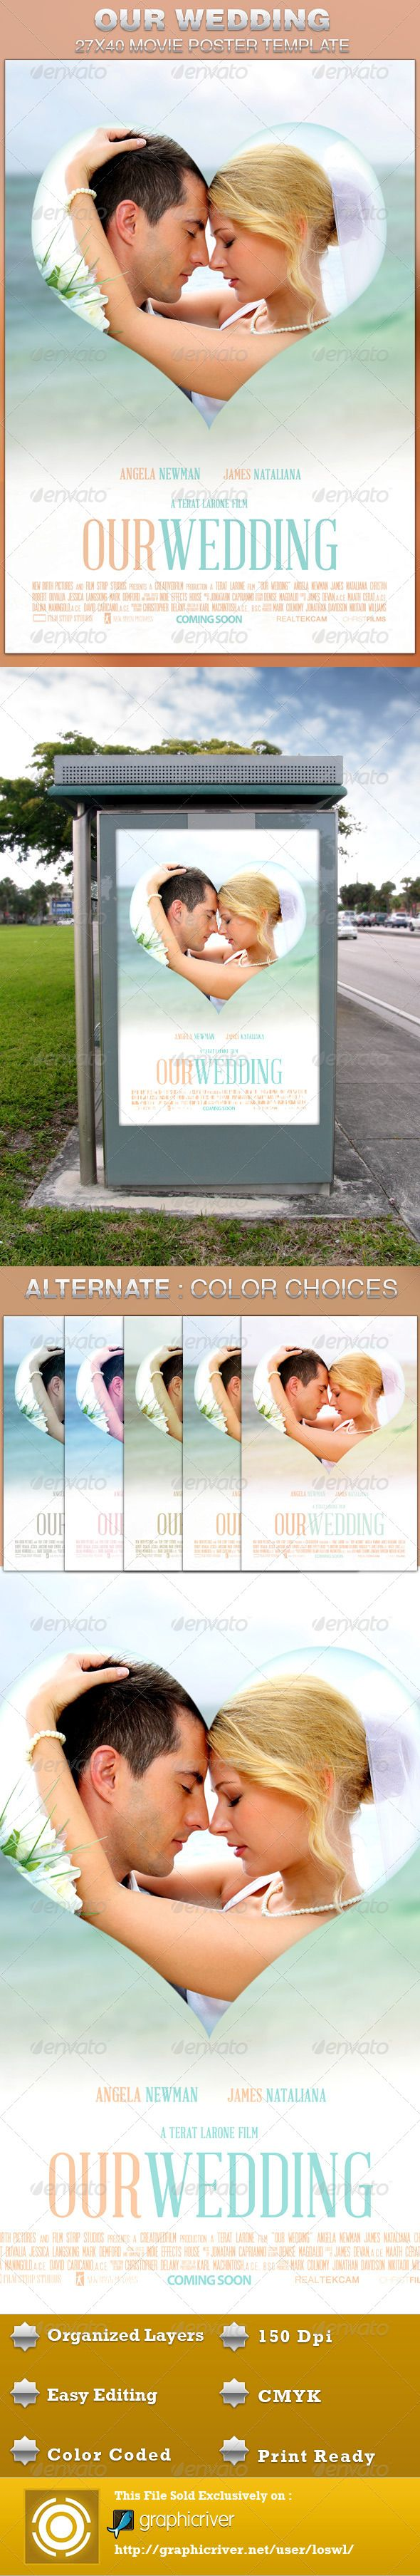 <Our Wedding Movie Poster Template is sold exclusively on graphicriver, it can be used for your movie promotion, wedding photo displays, sermon marketing etc. In this package you¡¯ll find 1 Photoshop file. All text and graphics in the file are editable, color coded and simple to edit. The file also has 6 one-click color options. MODELS NOT INCLUDED